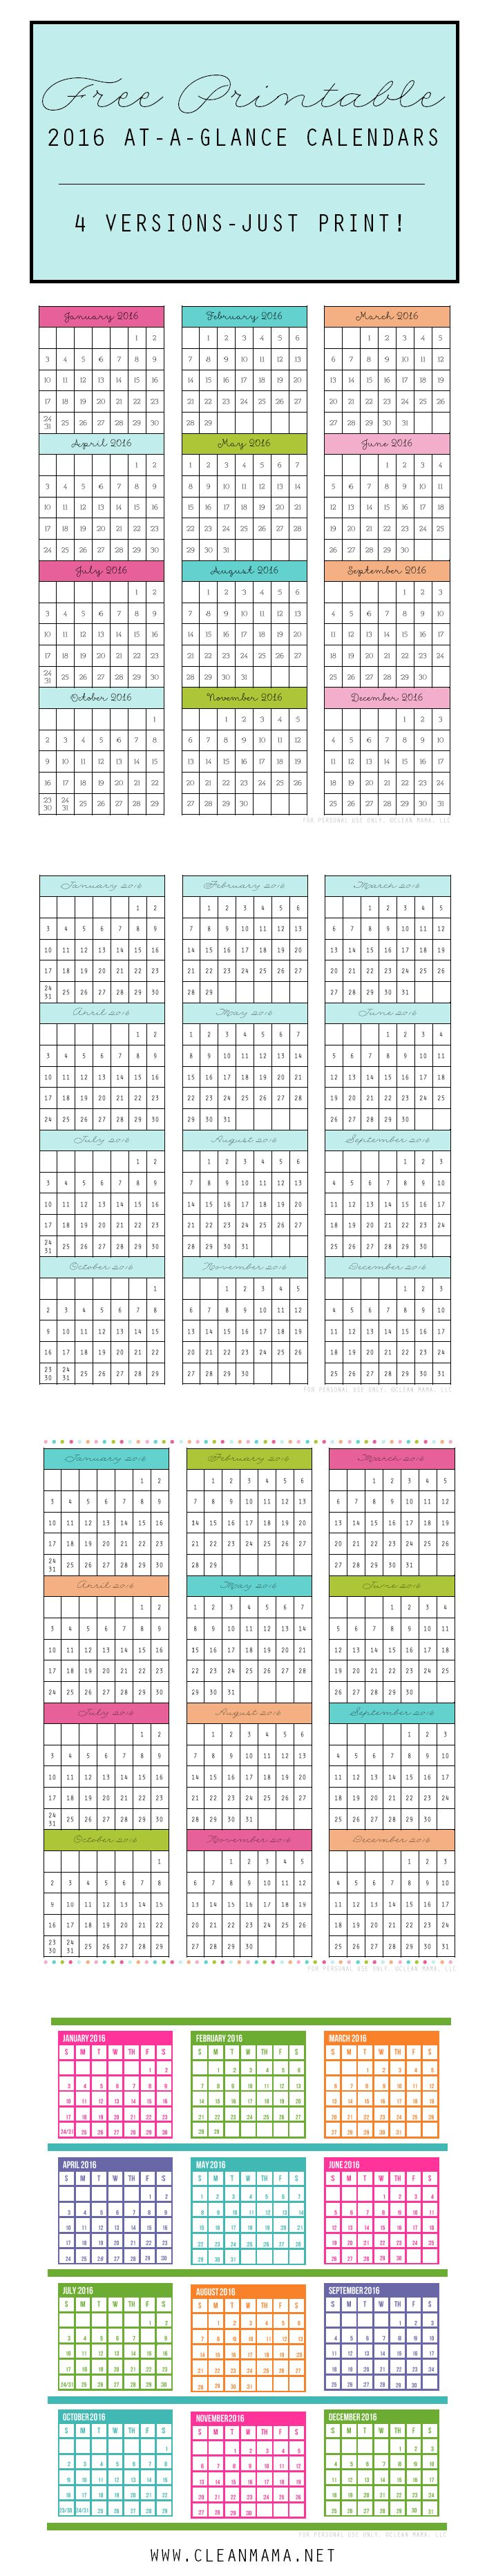 Add some organization with these FREE Printable 2016 At-A-Glance Calendars - 4 Versions - courtesy of Clean Mama